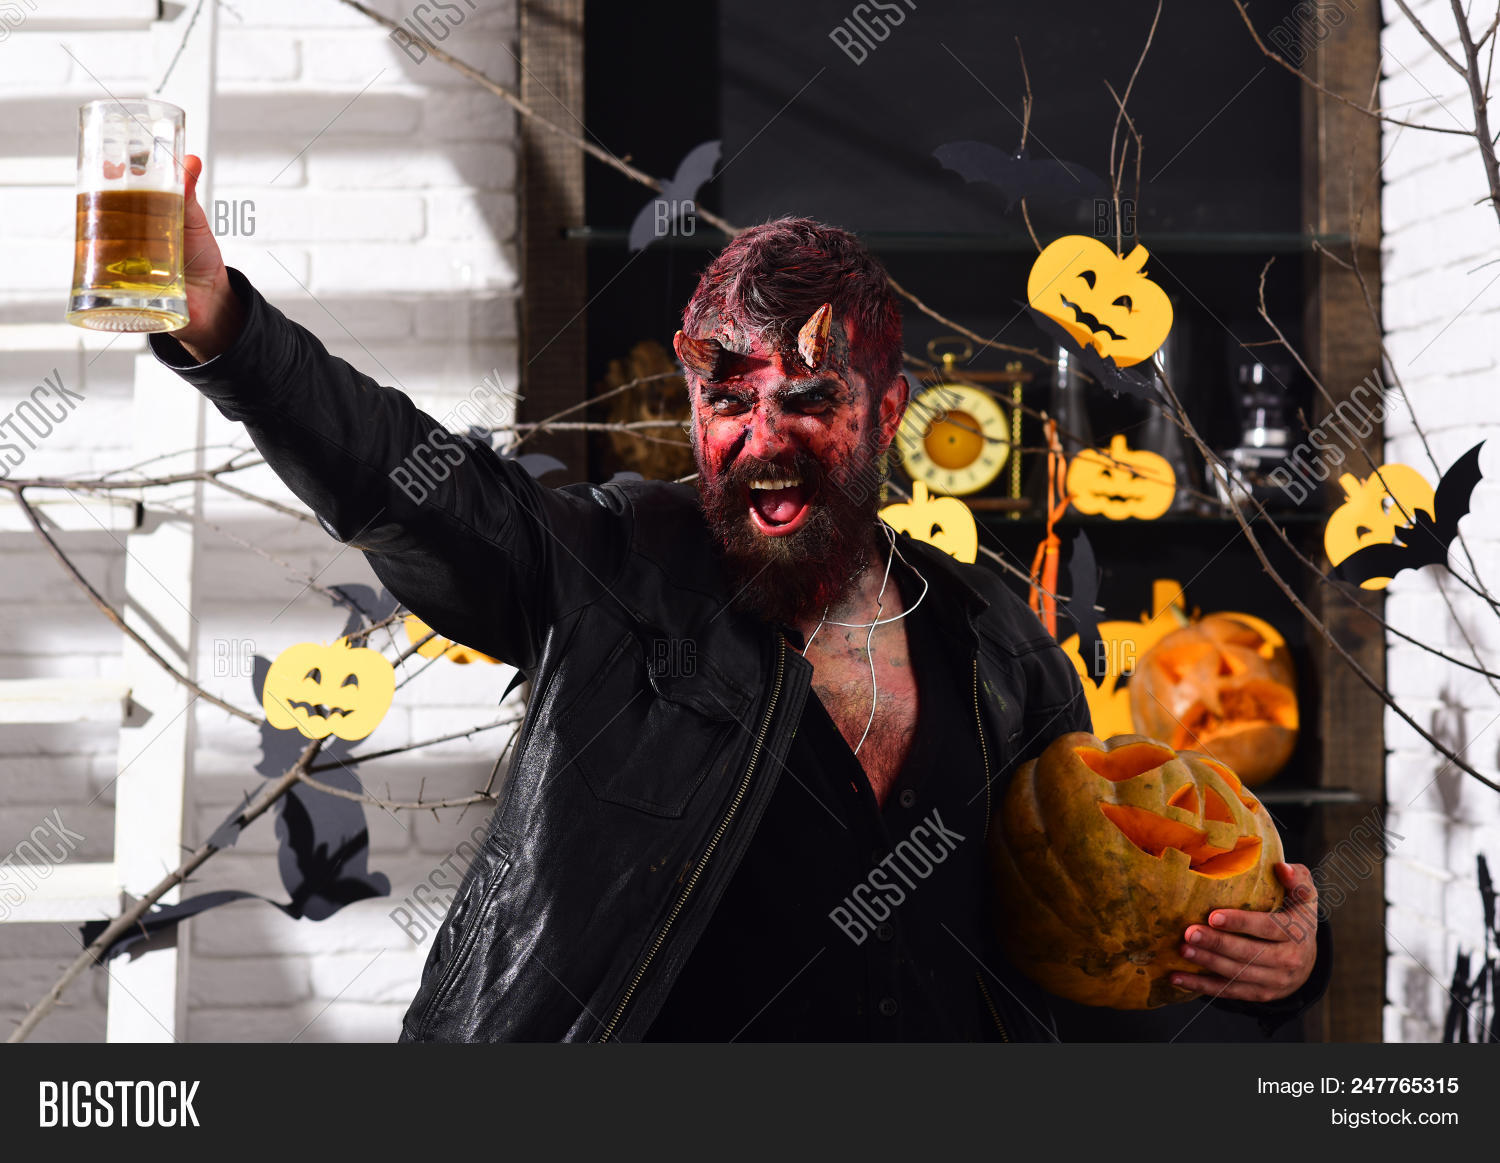 alcohol,ale,autumn,background,bat,beer,beverage,black,blood,carnival,caucasian,celebrate,celebration,concept,cosmetic,dead,decor,demon,devil,evil,face,festival,frighten,halloween,hold,holiday,horns,horror,jack,lantern,man,monster,mug,mystic,o,october,octoberfest,or,orange,party,partying,pumpkin,scary,smile,spooky,symbol,traditional,treat,trick,wear